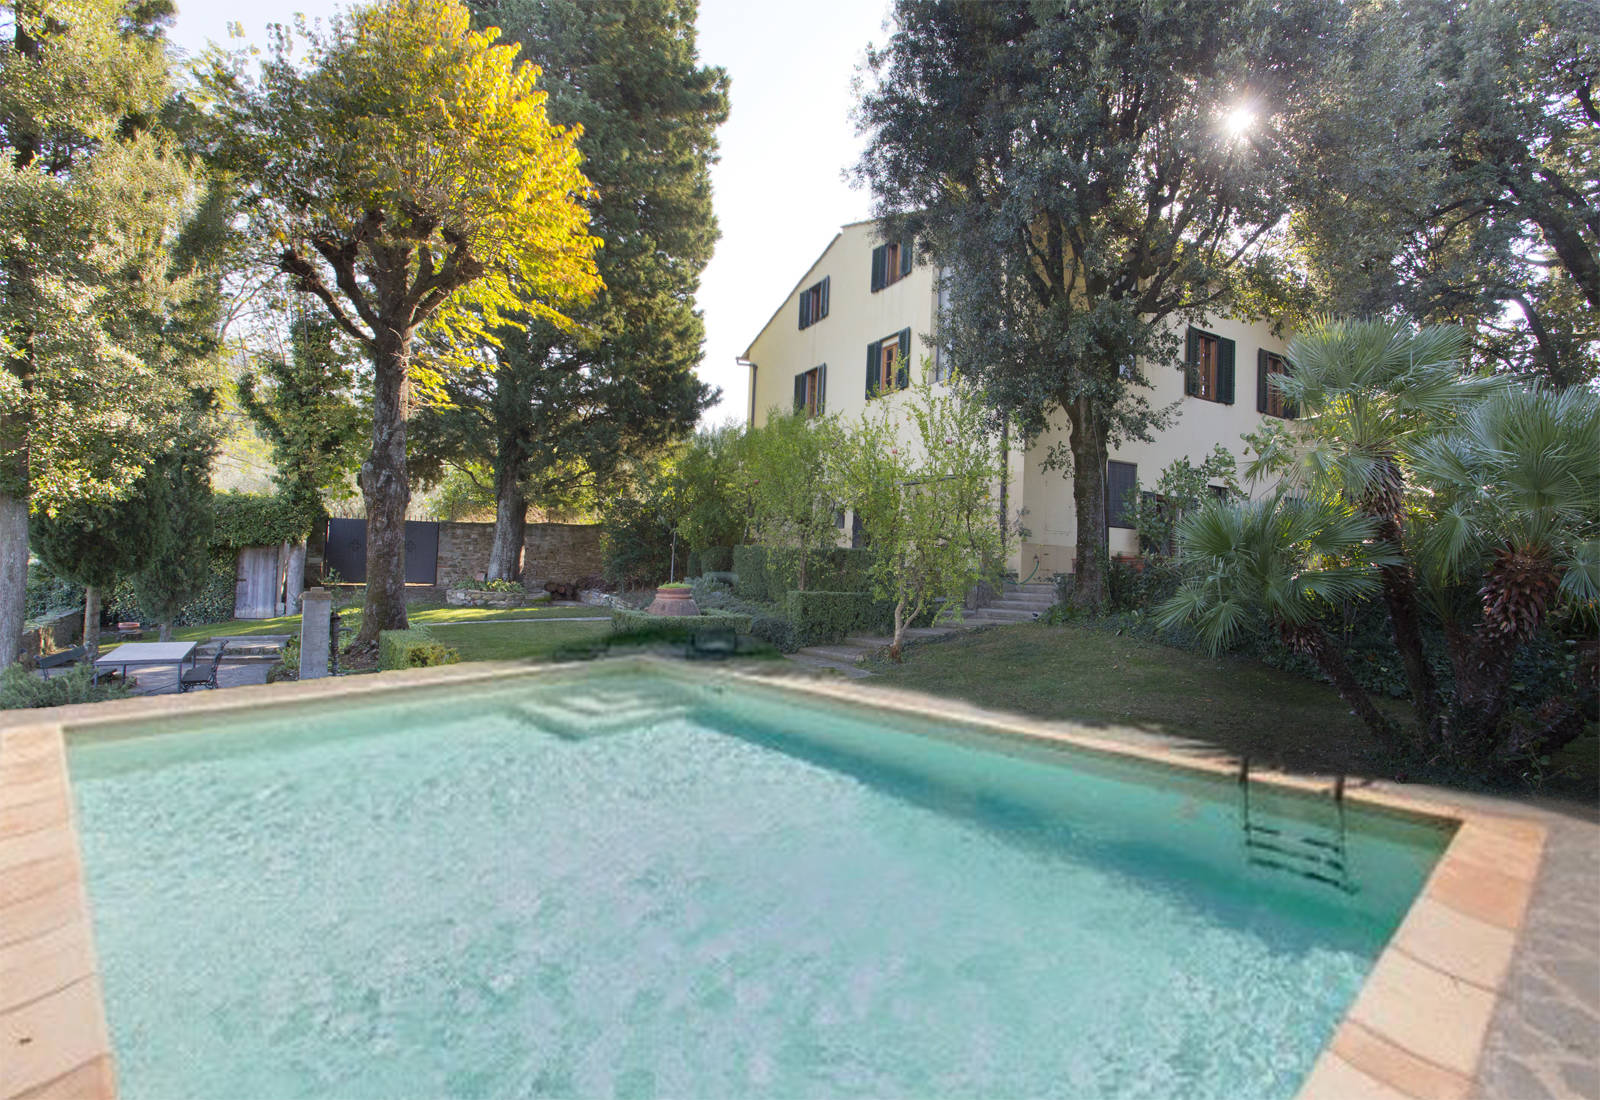 prestigious_real_estate_in_italy?id=2212